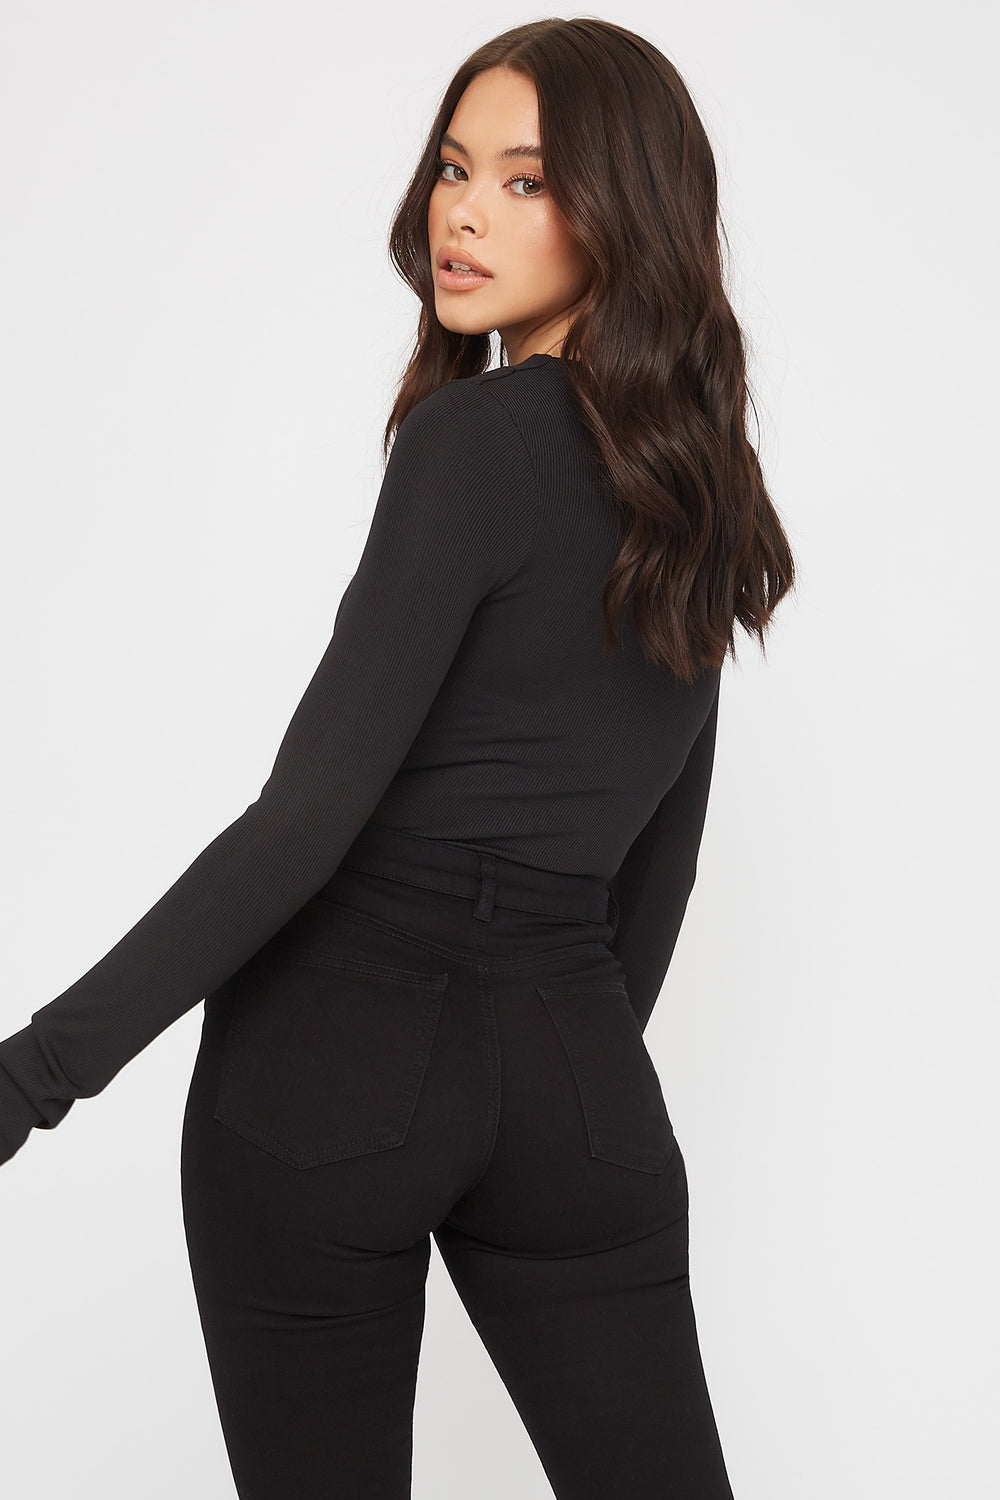 Ribbed V-Neck Empire Waist Long Sleeve Black